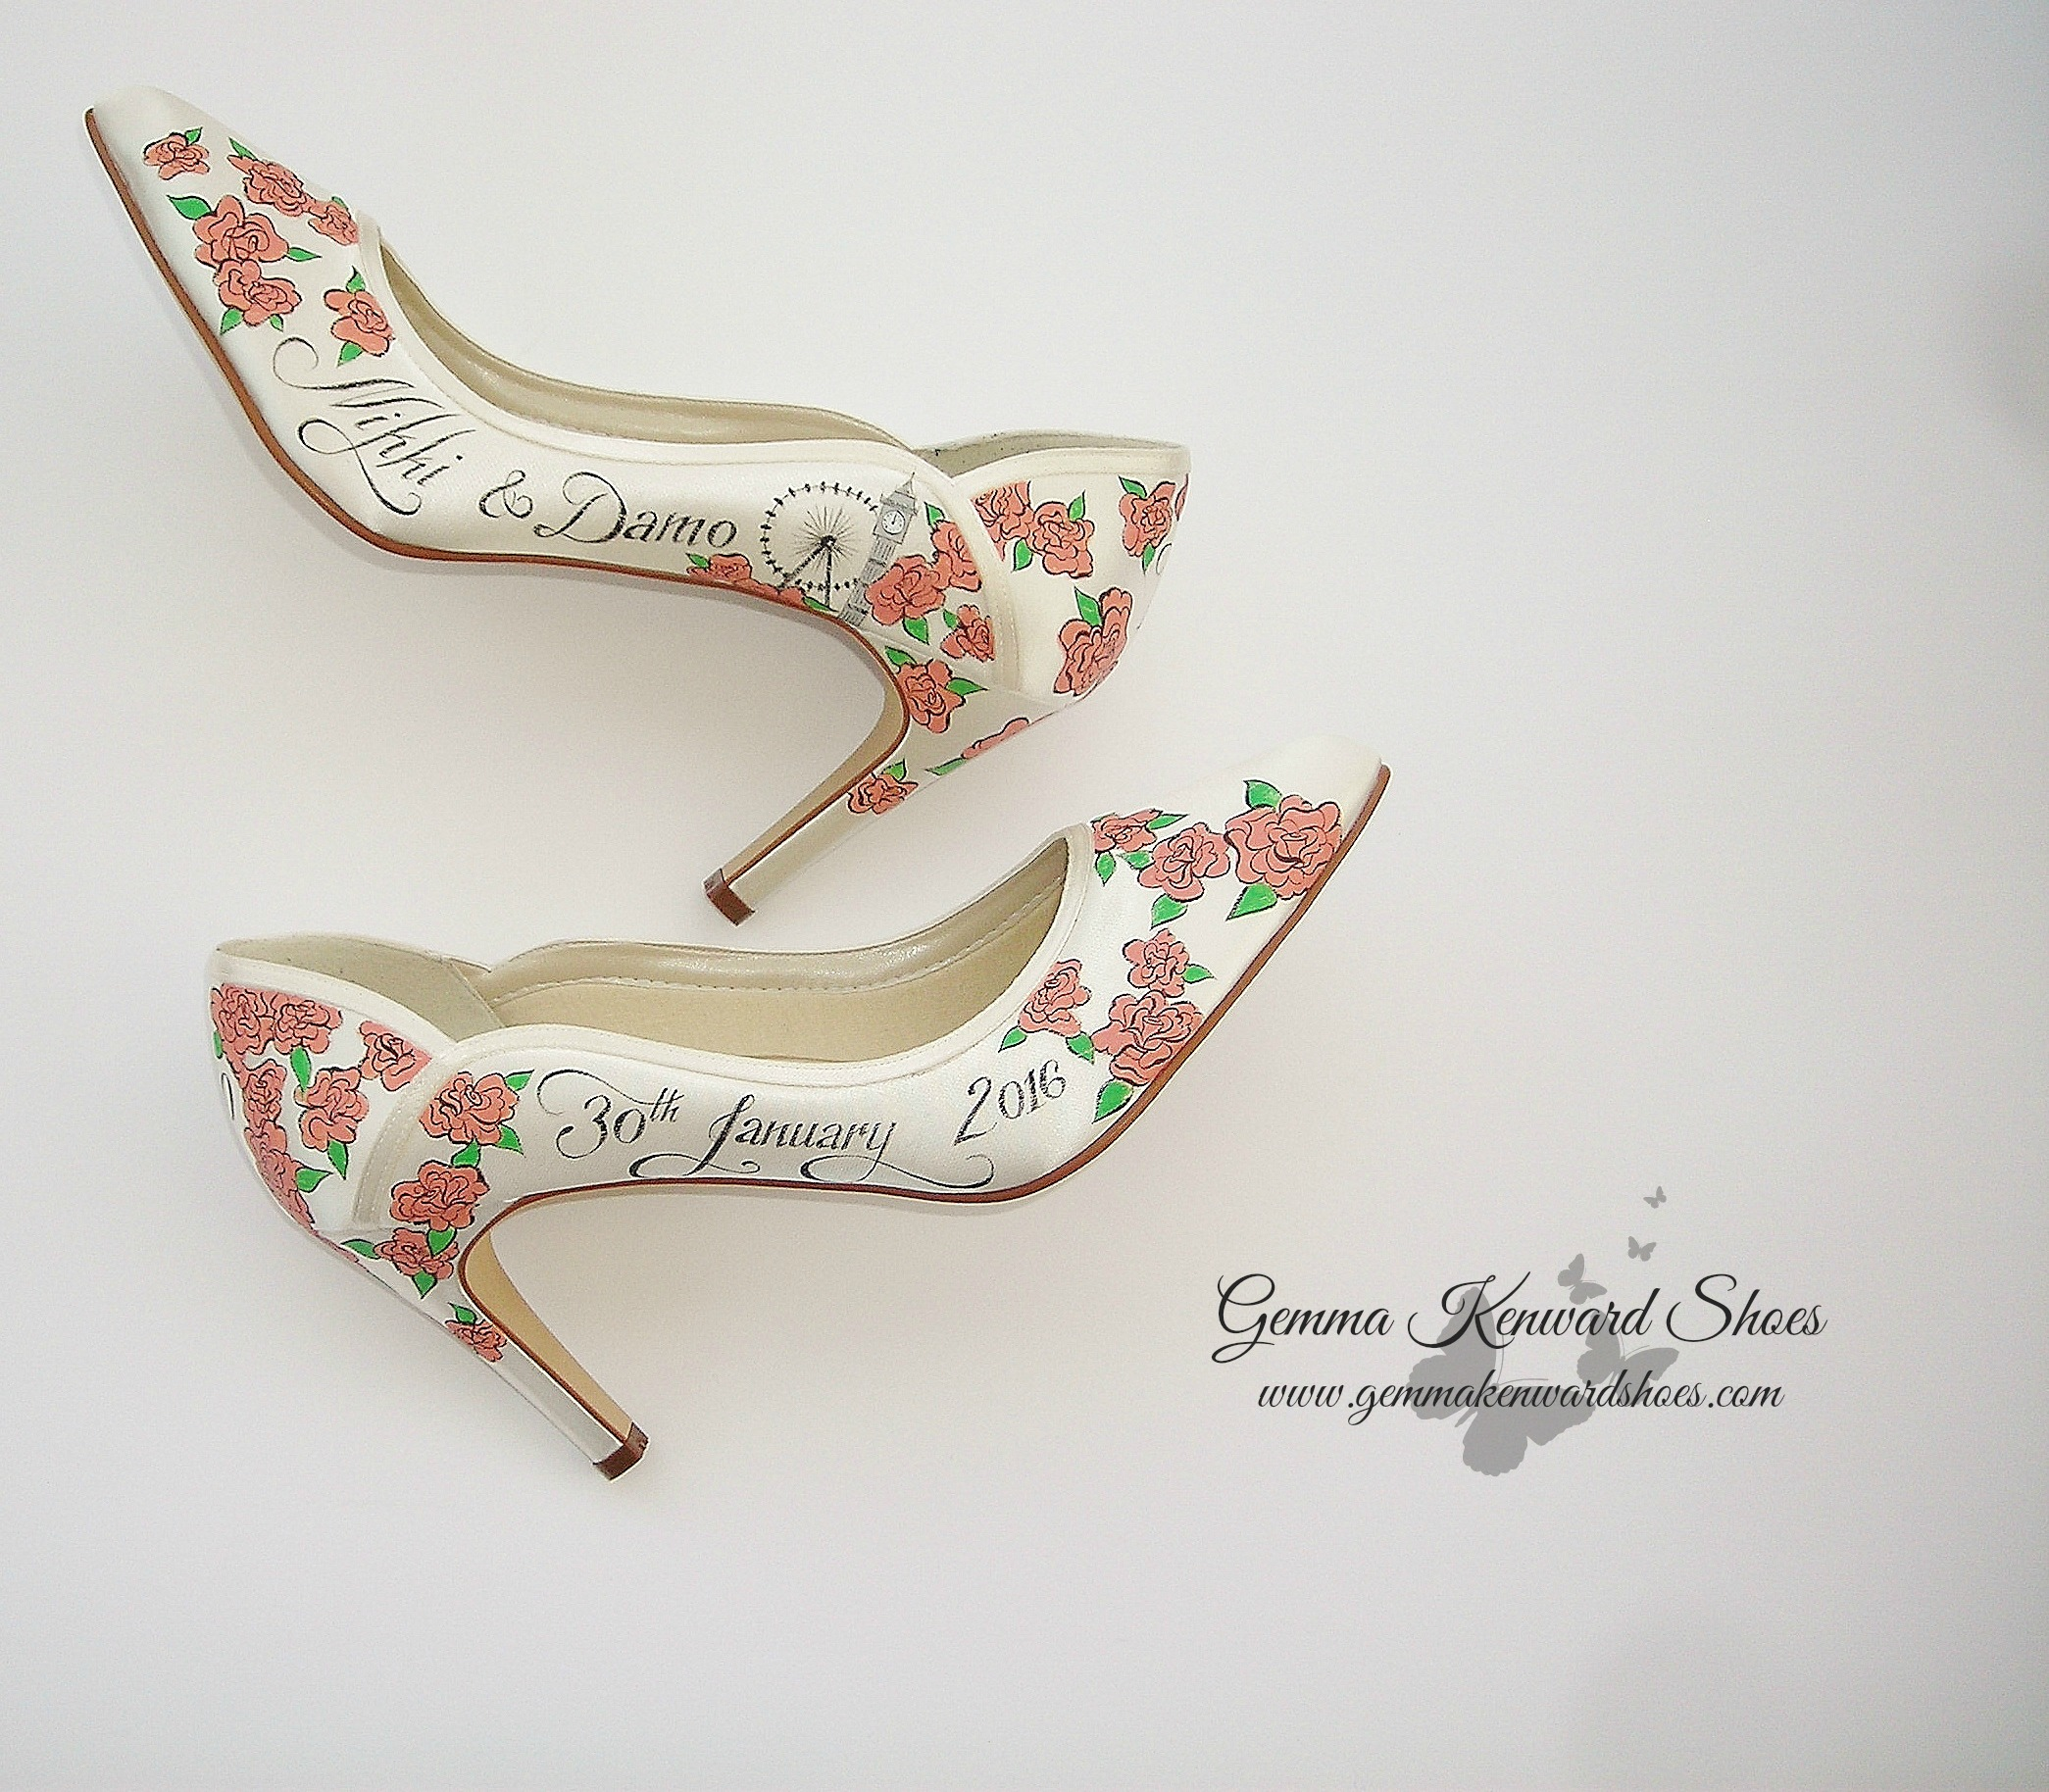 Names and date painted on the wedding shoes for the bride and groom getting married in London